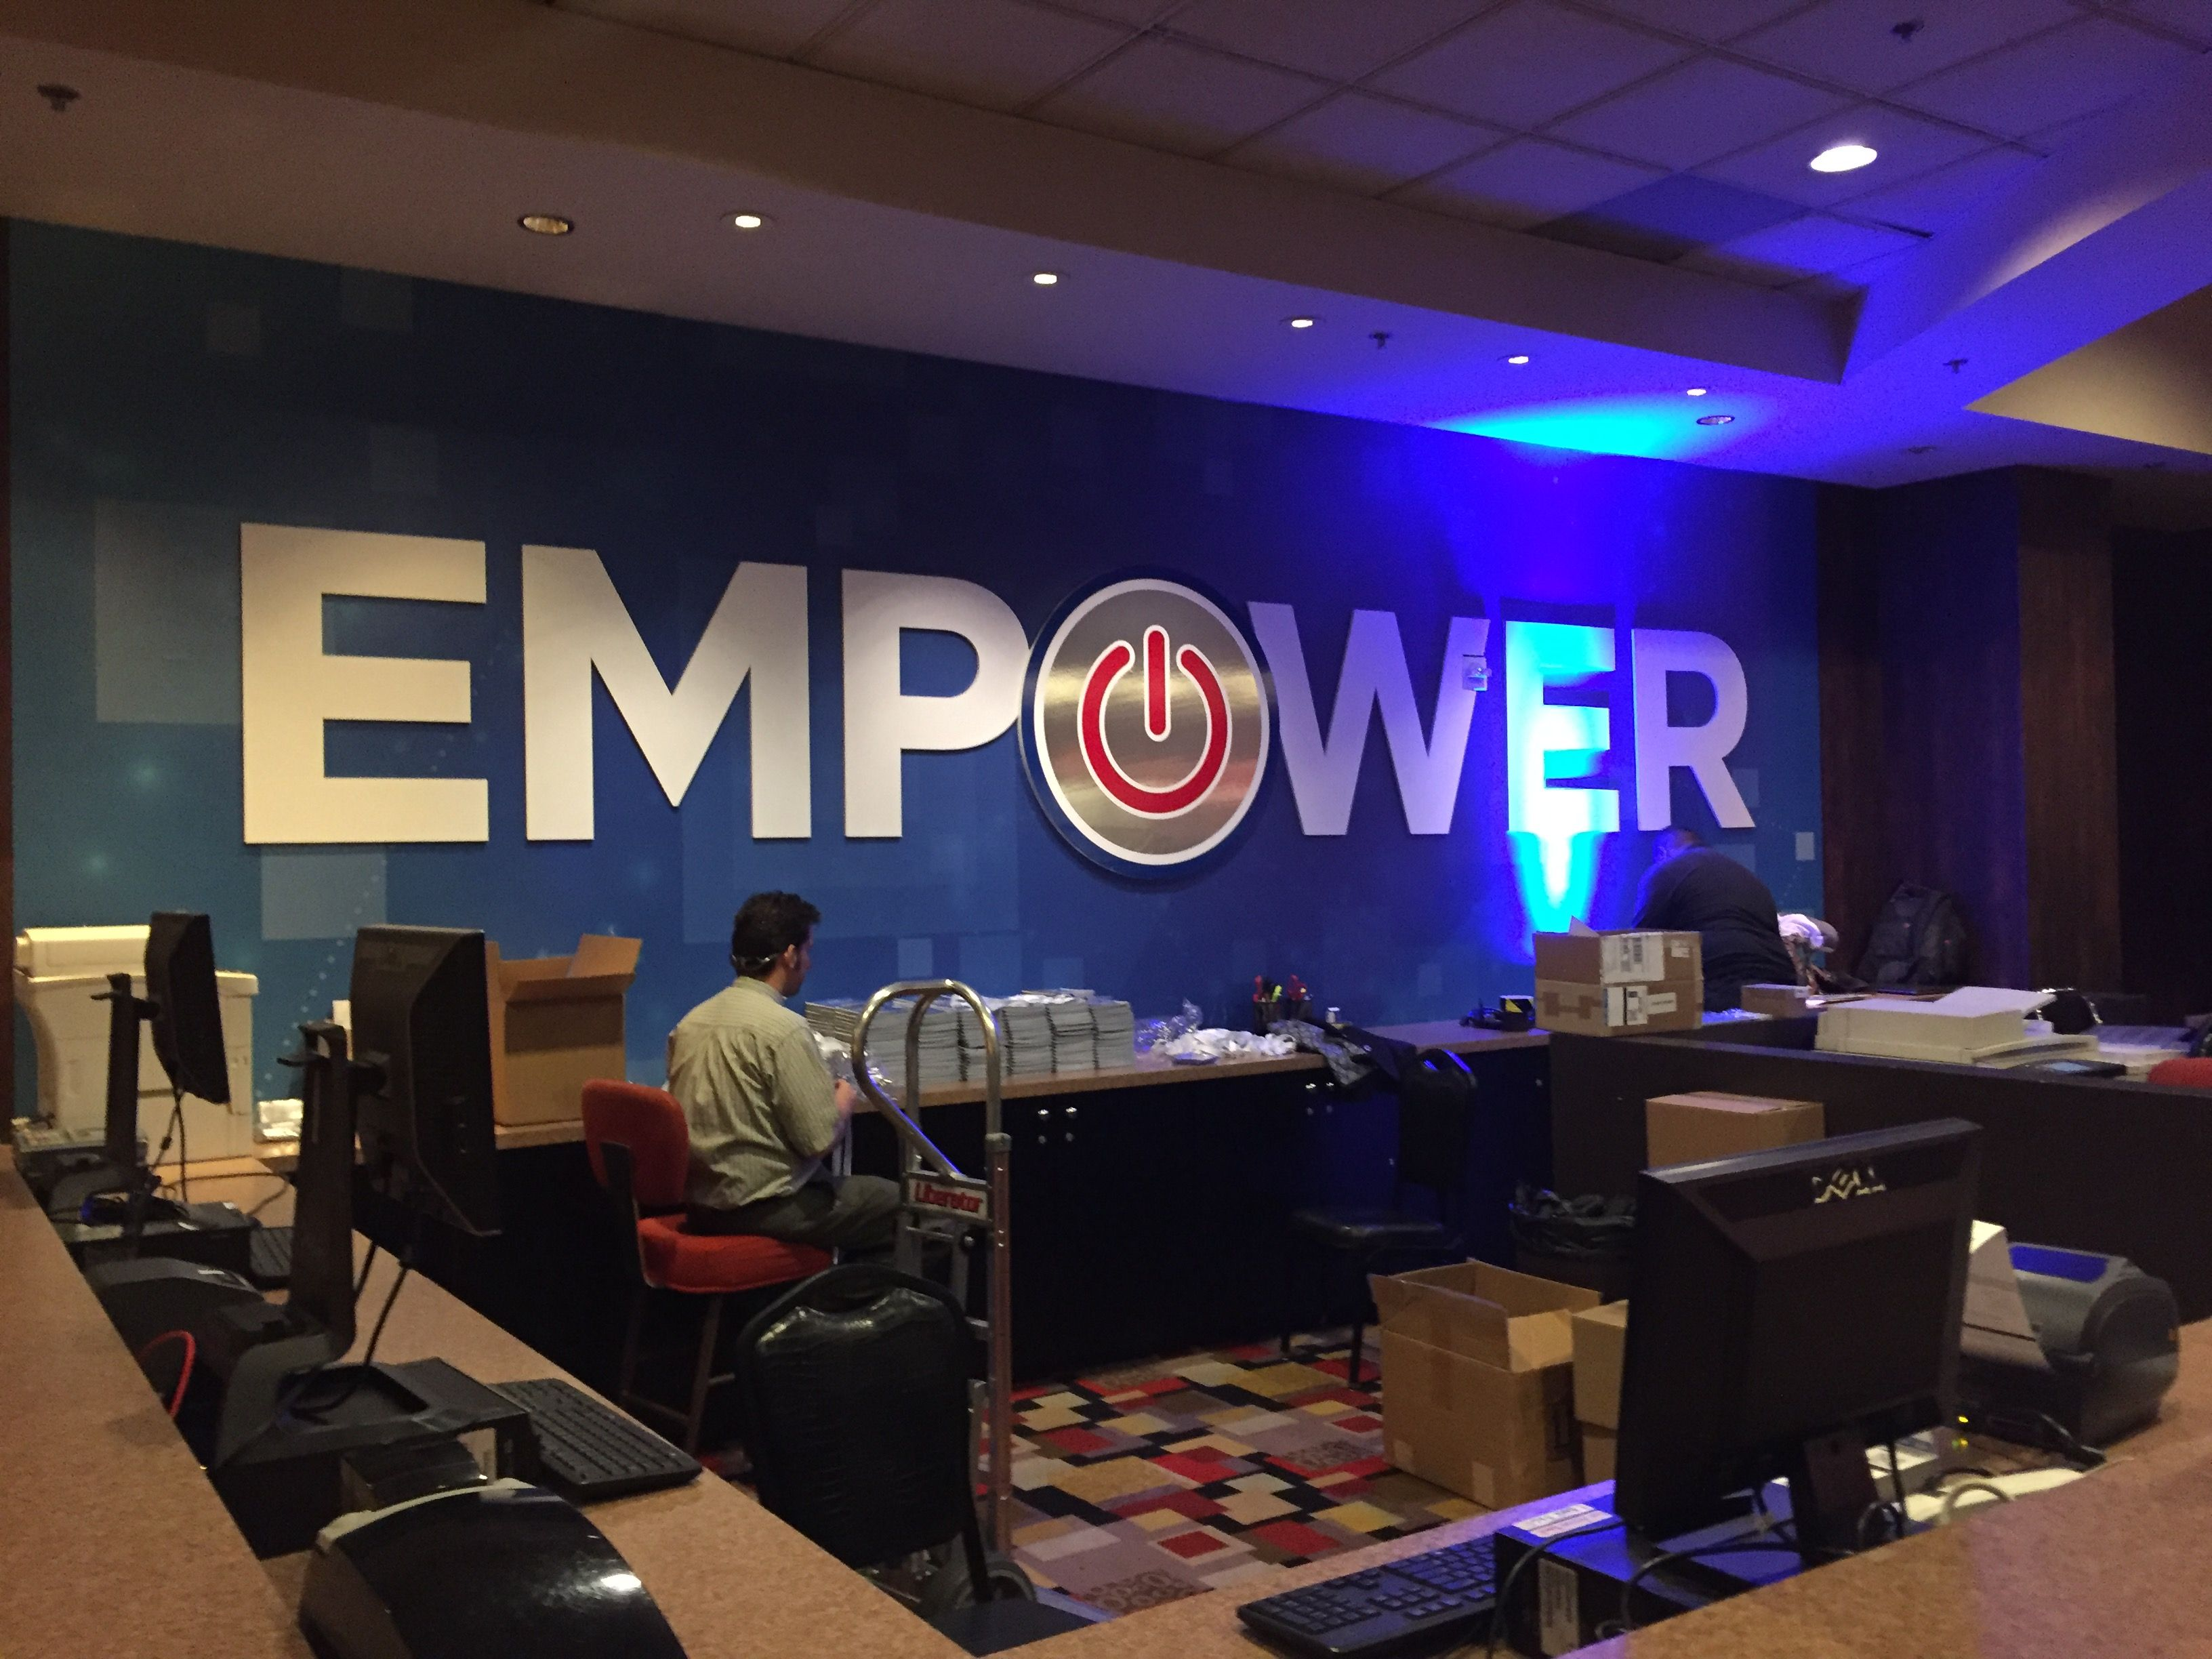 Wall Wrap for Empower